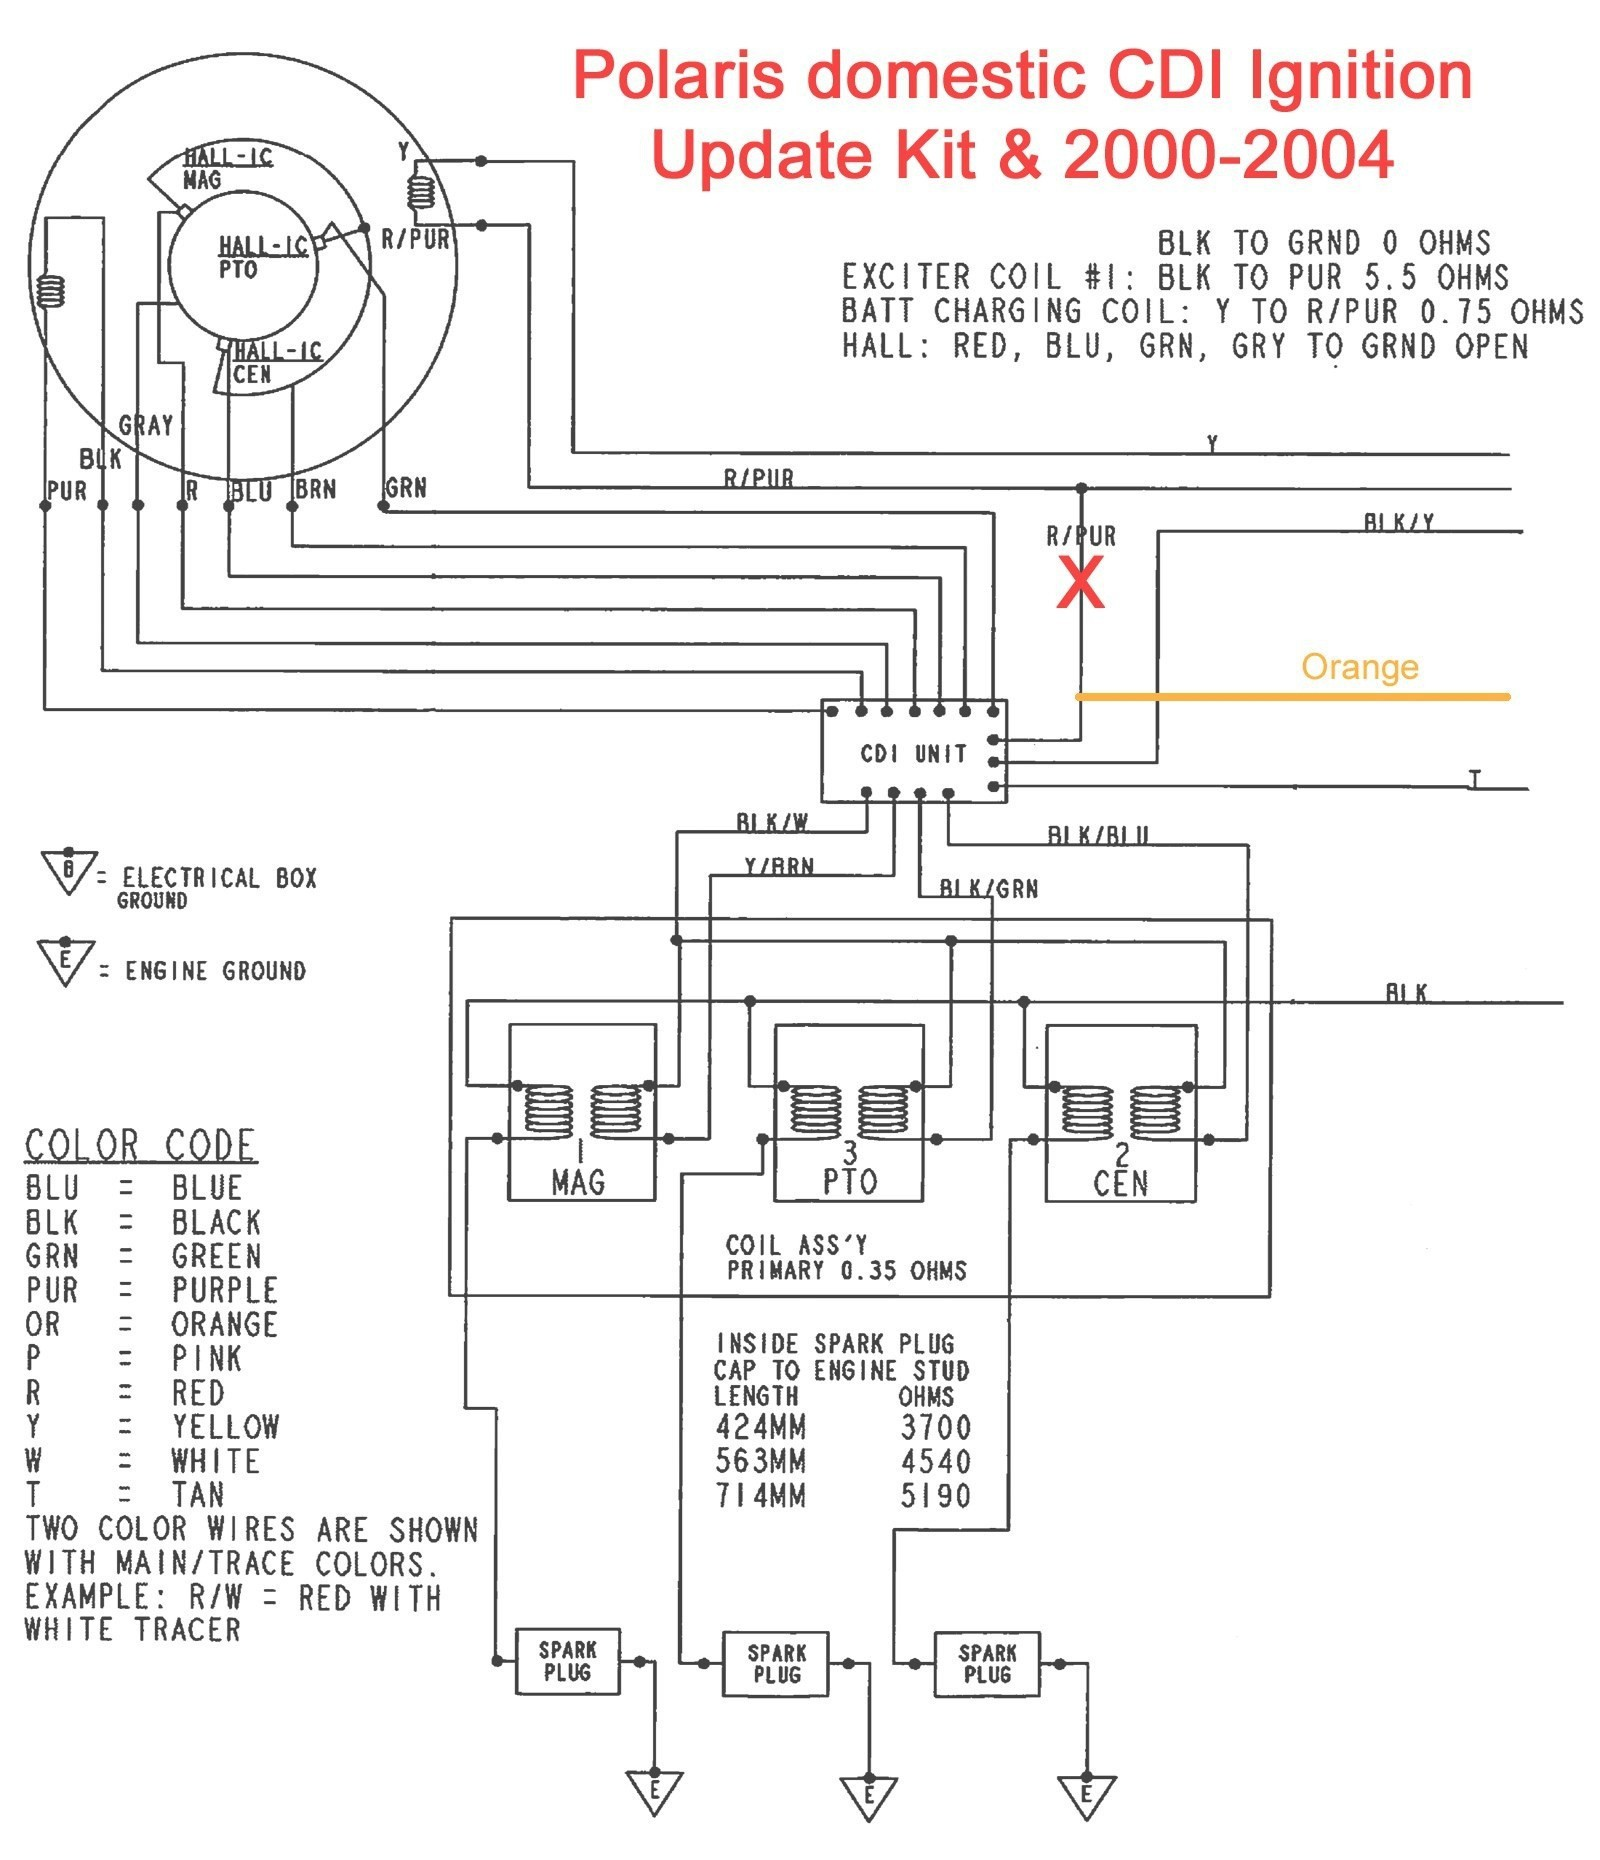 Gfci Outlet Wiring Diagram Luxury Car Electrical Wiring 2002 Polaris Scrambler 50 Manual Support